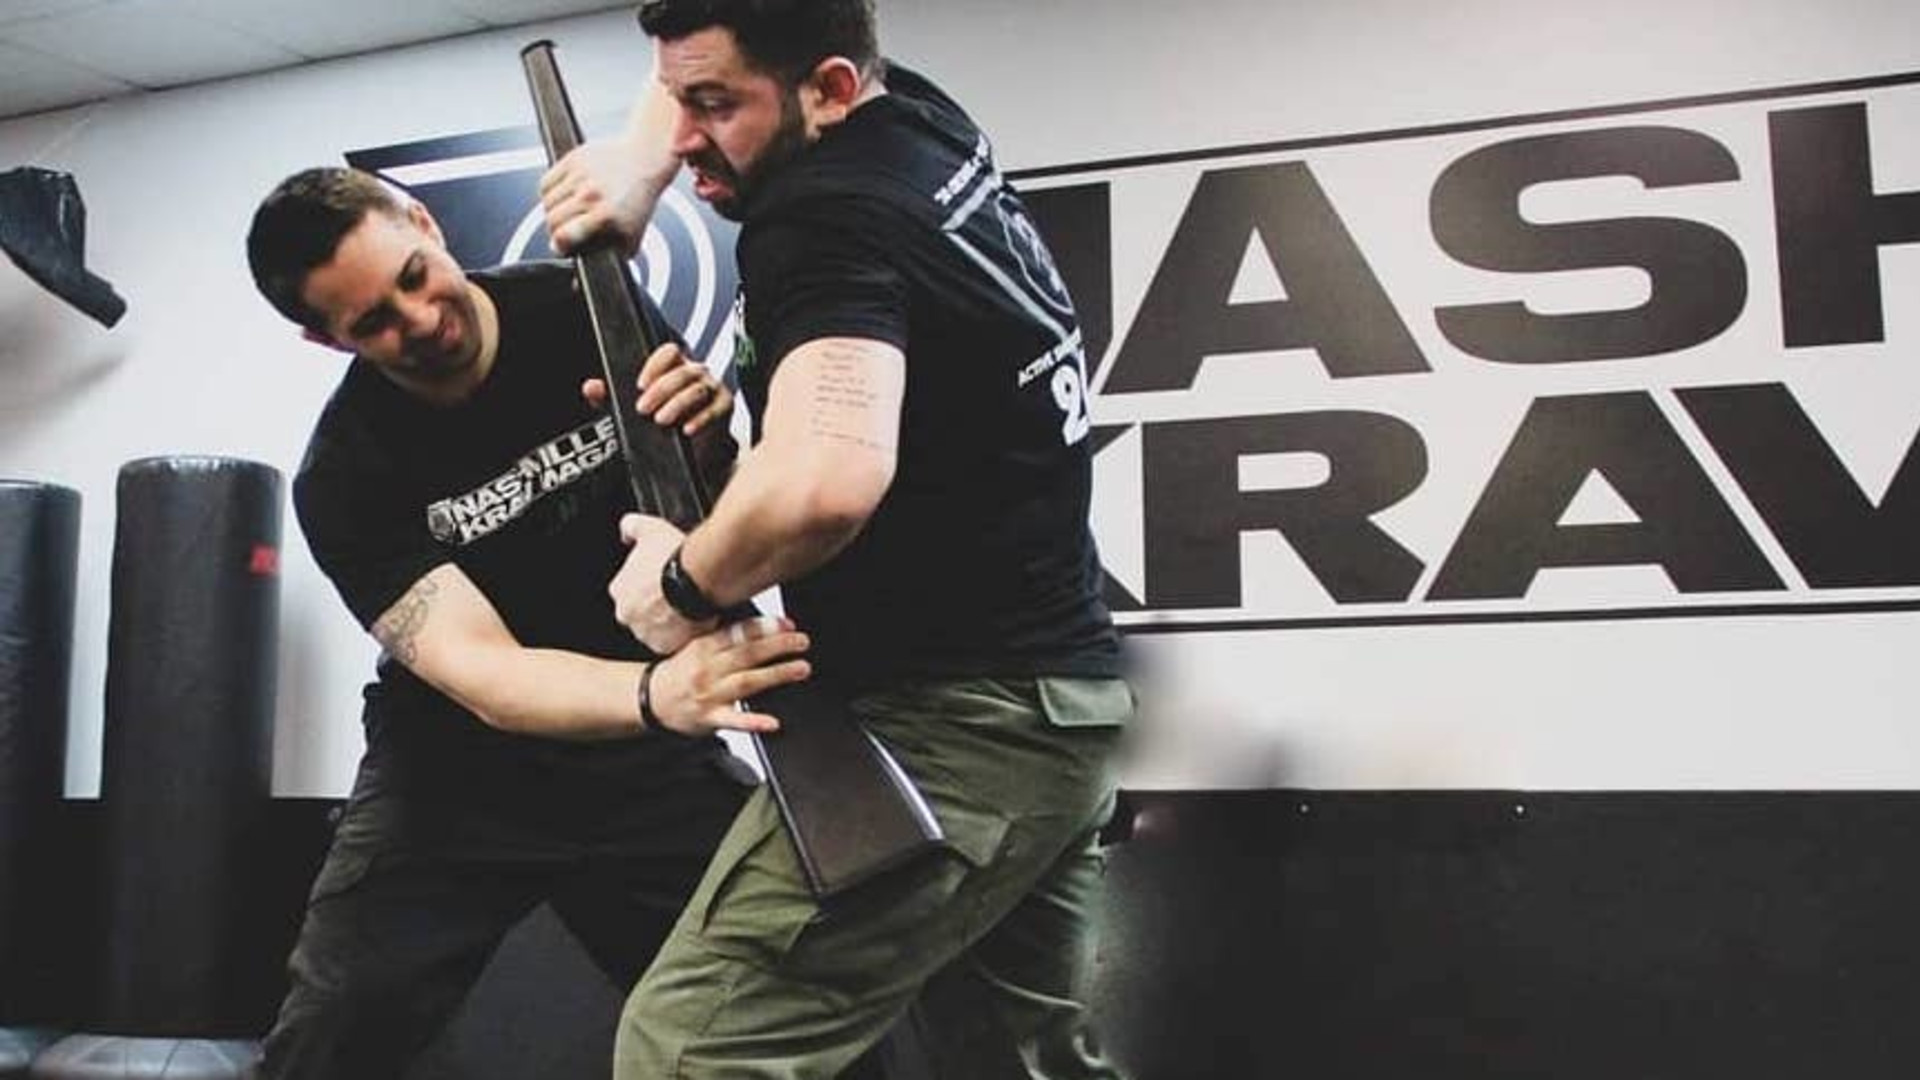 """<style> v {   text-shadow: 2px 2px 8px #1e2a55; } </style><strong><v><span style=""""color:#fff;""""> Join Us In Franklin For The Best Krav Maga, Fitness Kickboxing, And Kids Training Around! <a href=""""http://nashville-krav-maga.com/Location"""" target=""""_blank""""><img src=""""https://res.cloudinary.com/display97/image/upload/434552129-2-204128.png"""" alt="""""""" /></a></span></v></strong>"""